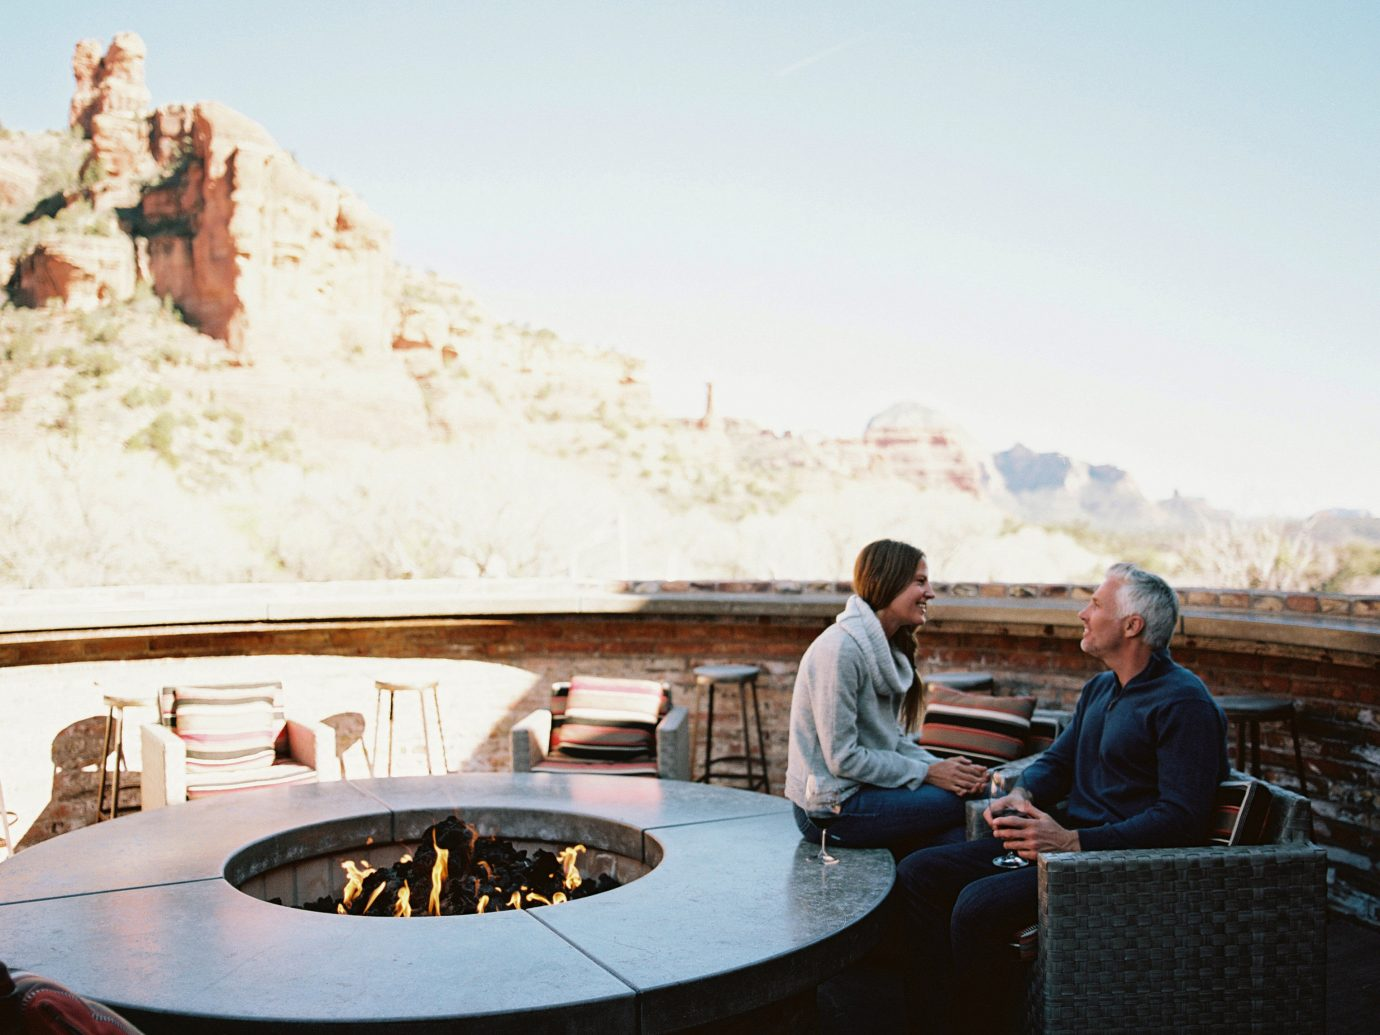 Hotels Jetsetter Guides Luxury Travel Trip Ideas Weekend Getaways photograph person vacation sky tourism landscape recreation vehicle